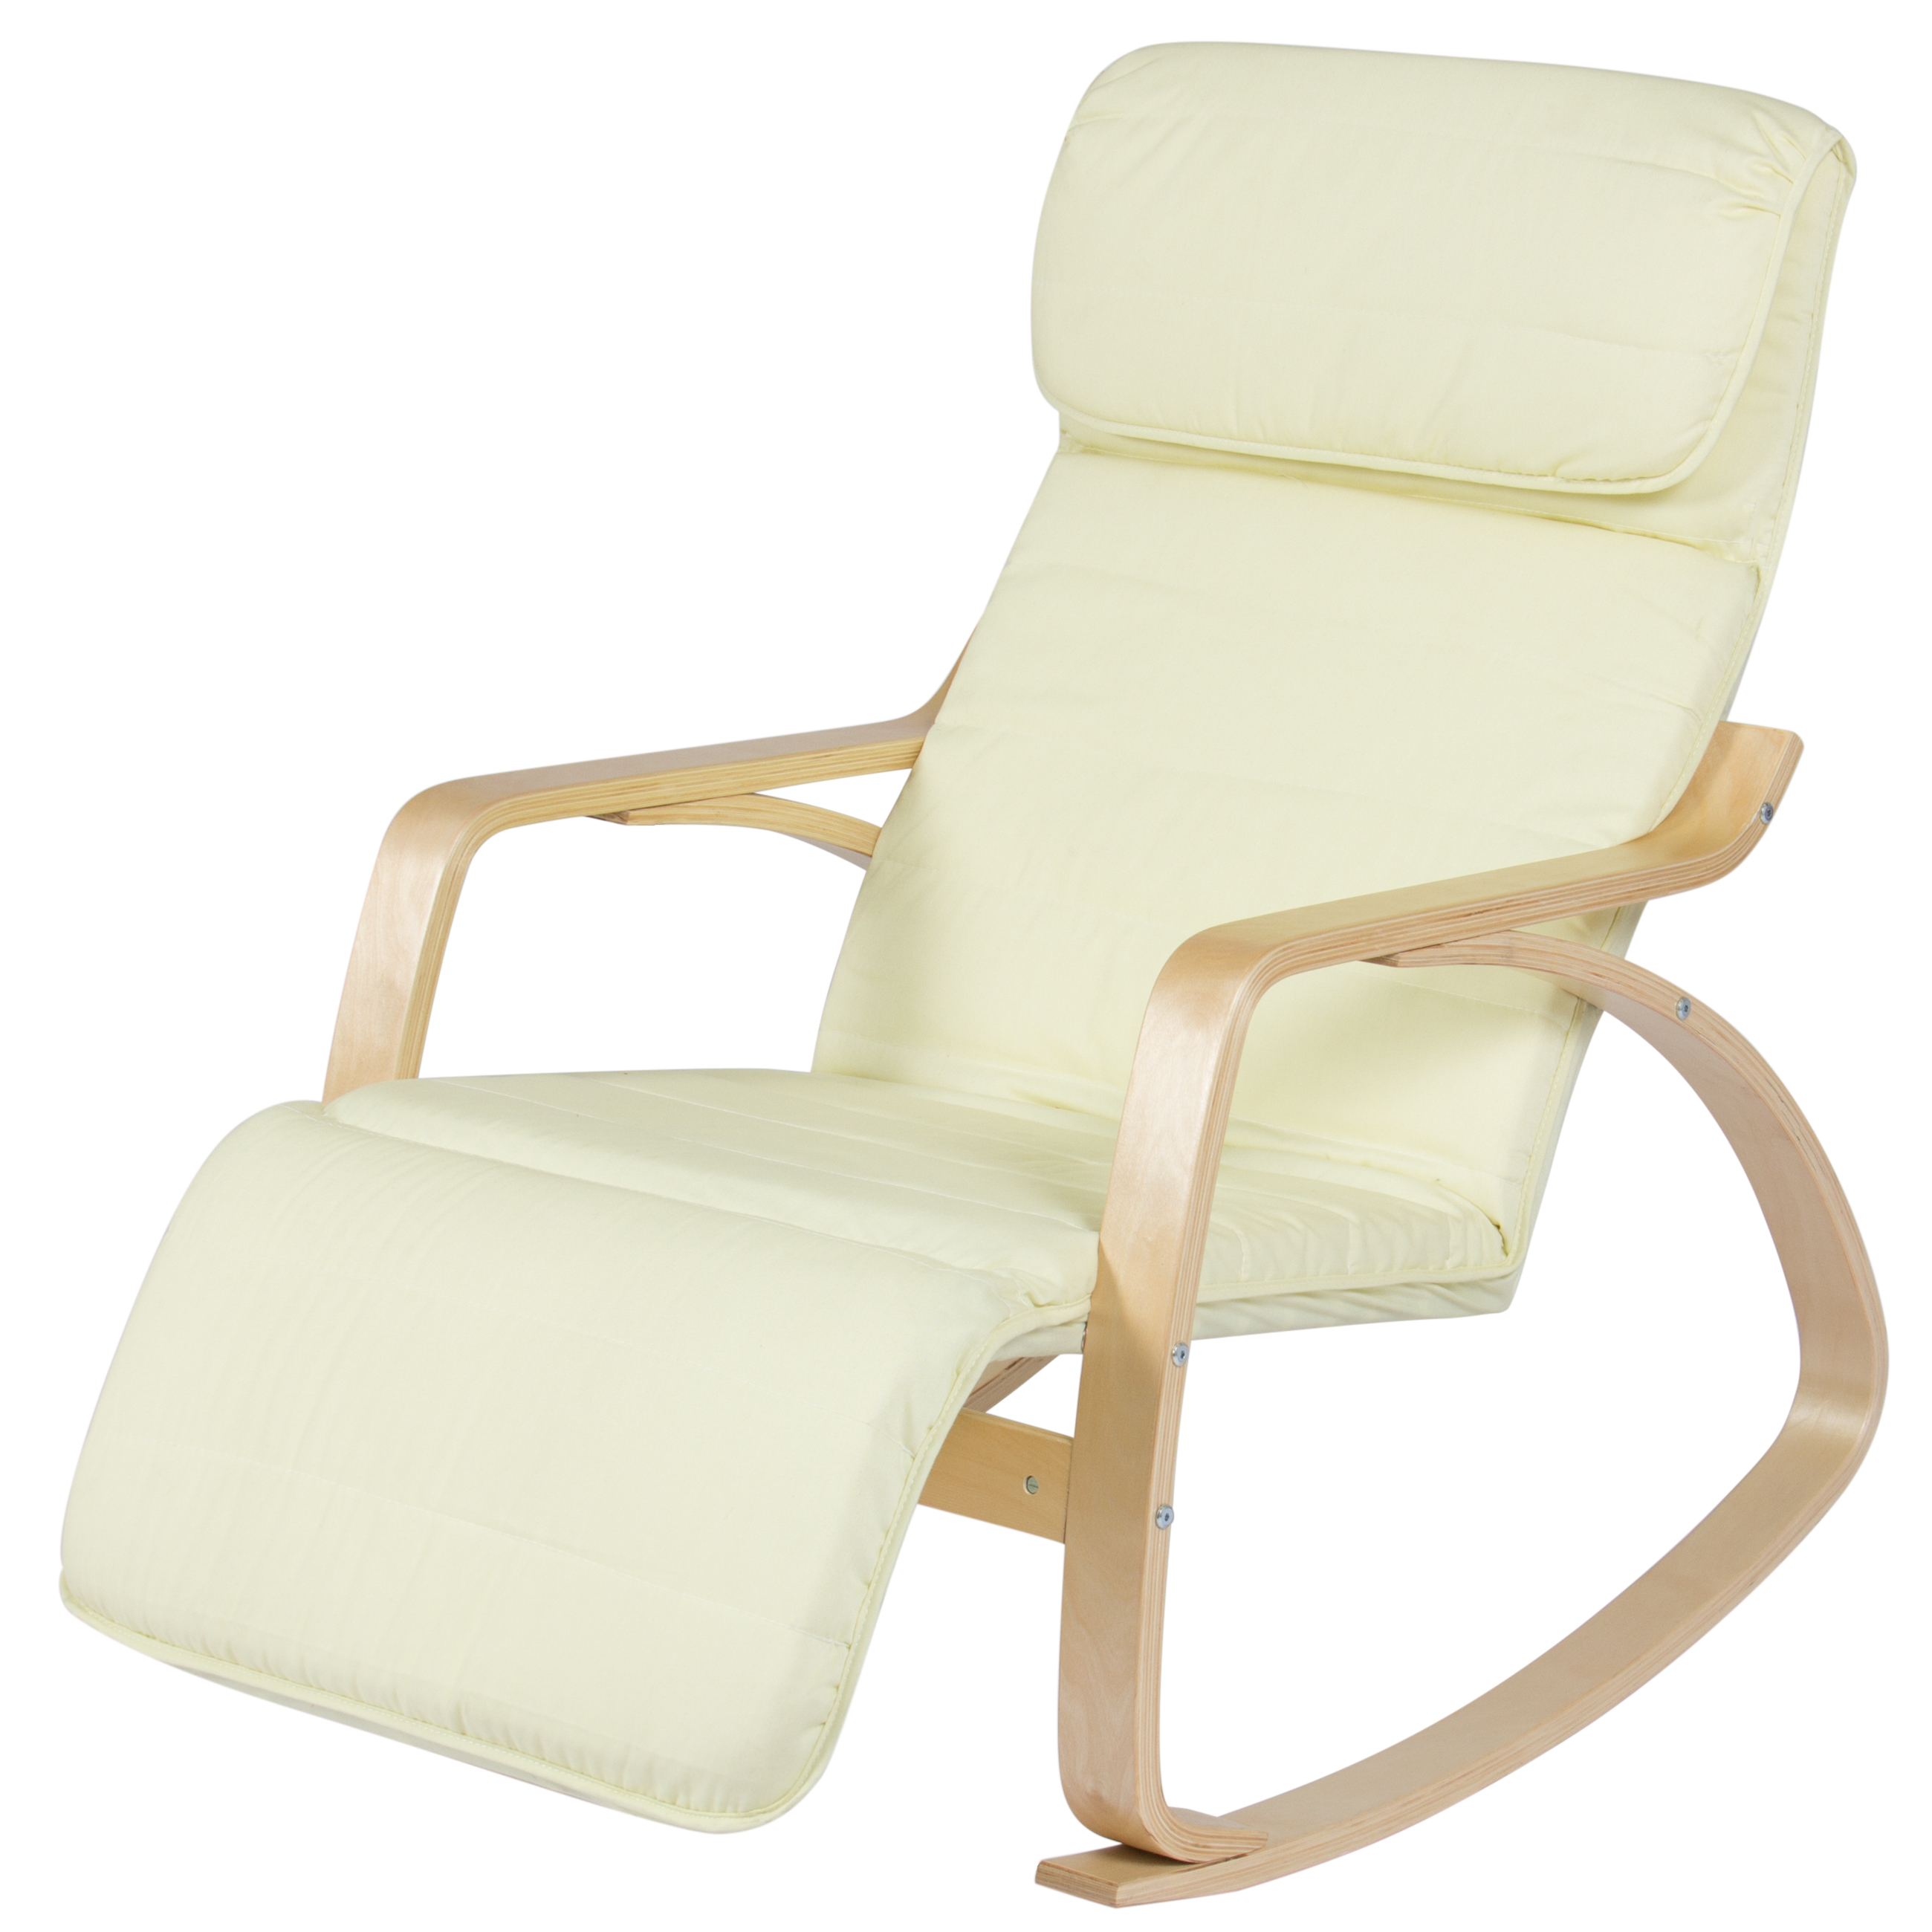 Best Choice Products Birch Bentwood Cushioned Rocking Chair W/ Adjustable  Leg Rest (Cream)